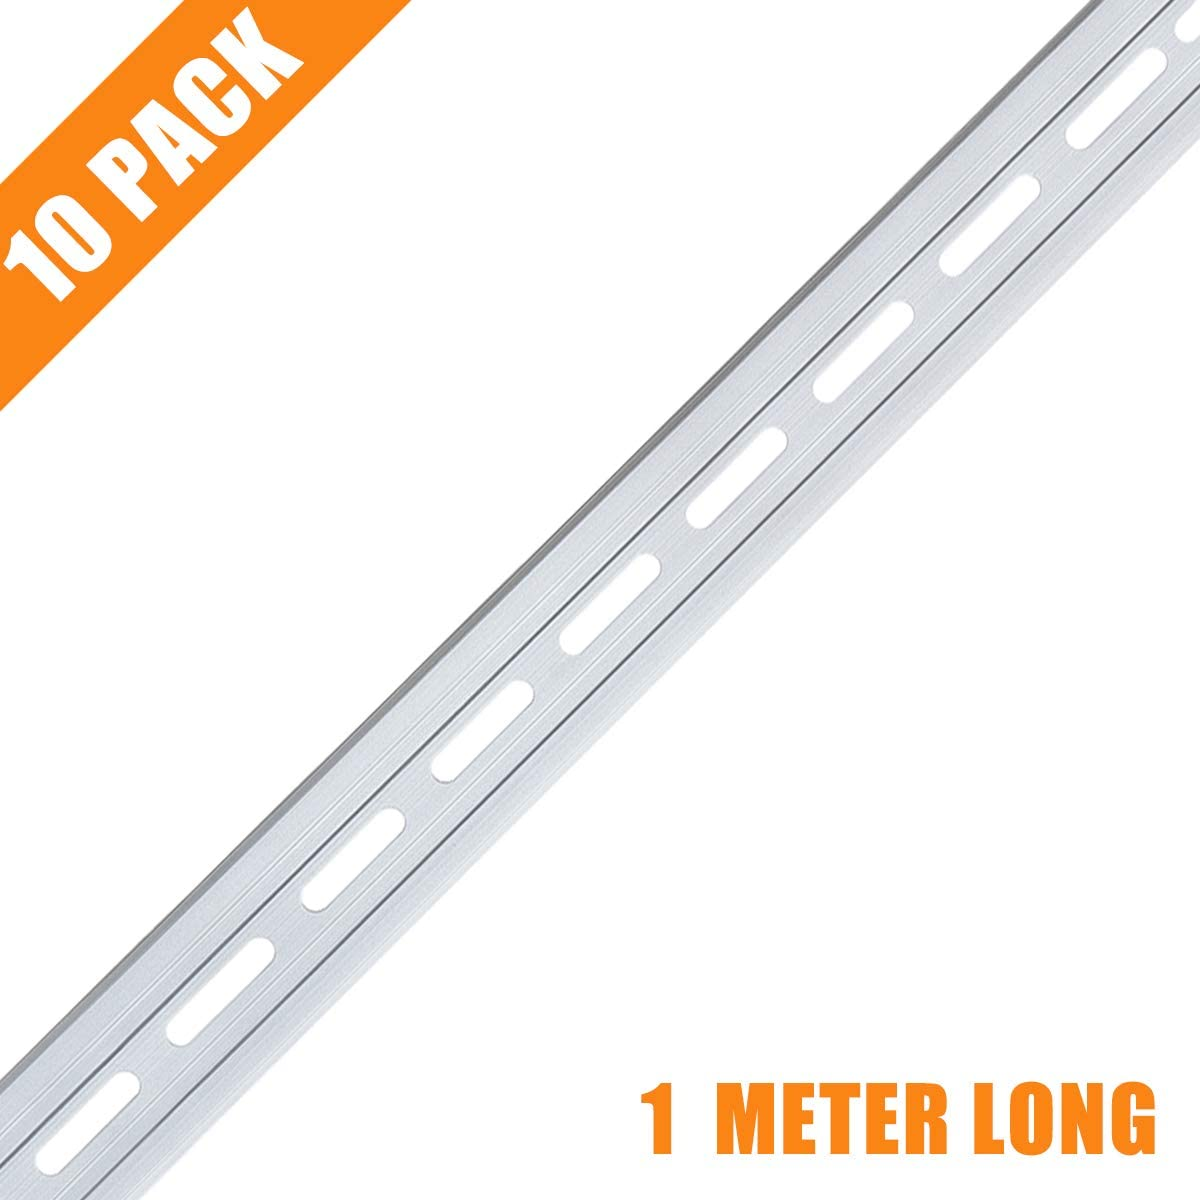 1 Meter DIN Rail, 10 Pieces Aluminum Top Hat Slotted DIN Rails with RoHS for Professionals and DIY Cut Length | Hardware Components Mounting - 1 Meter Long, 35mm Wide, 7.5mm High